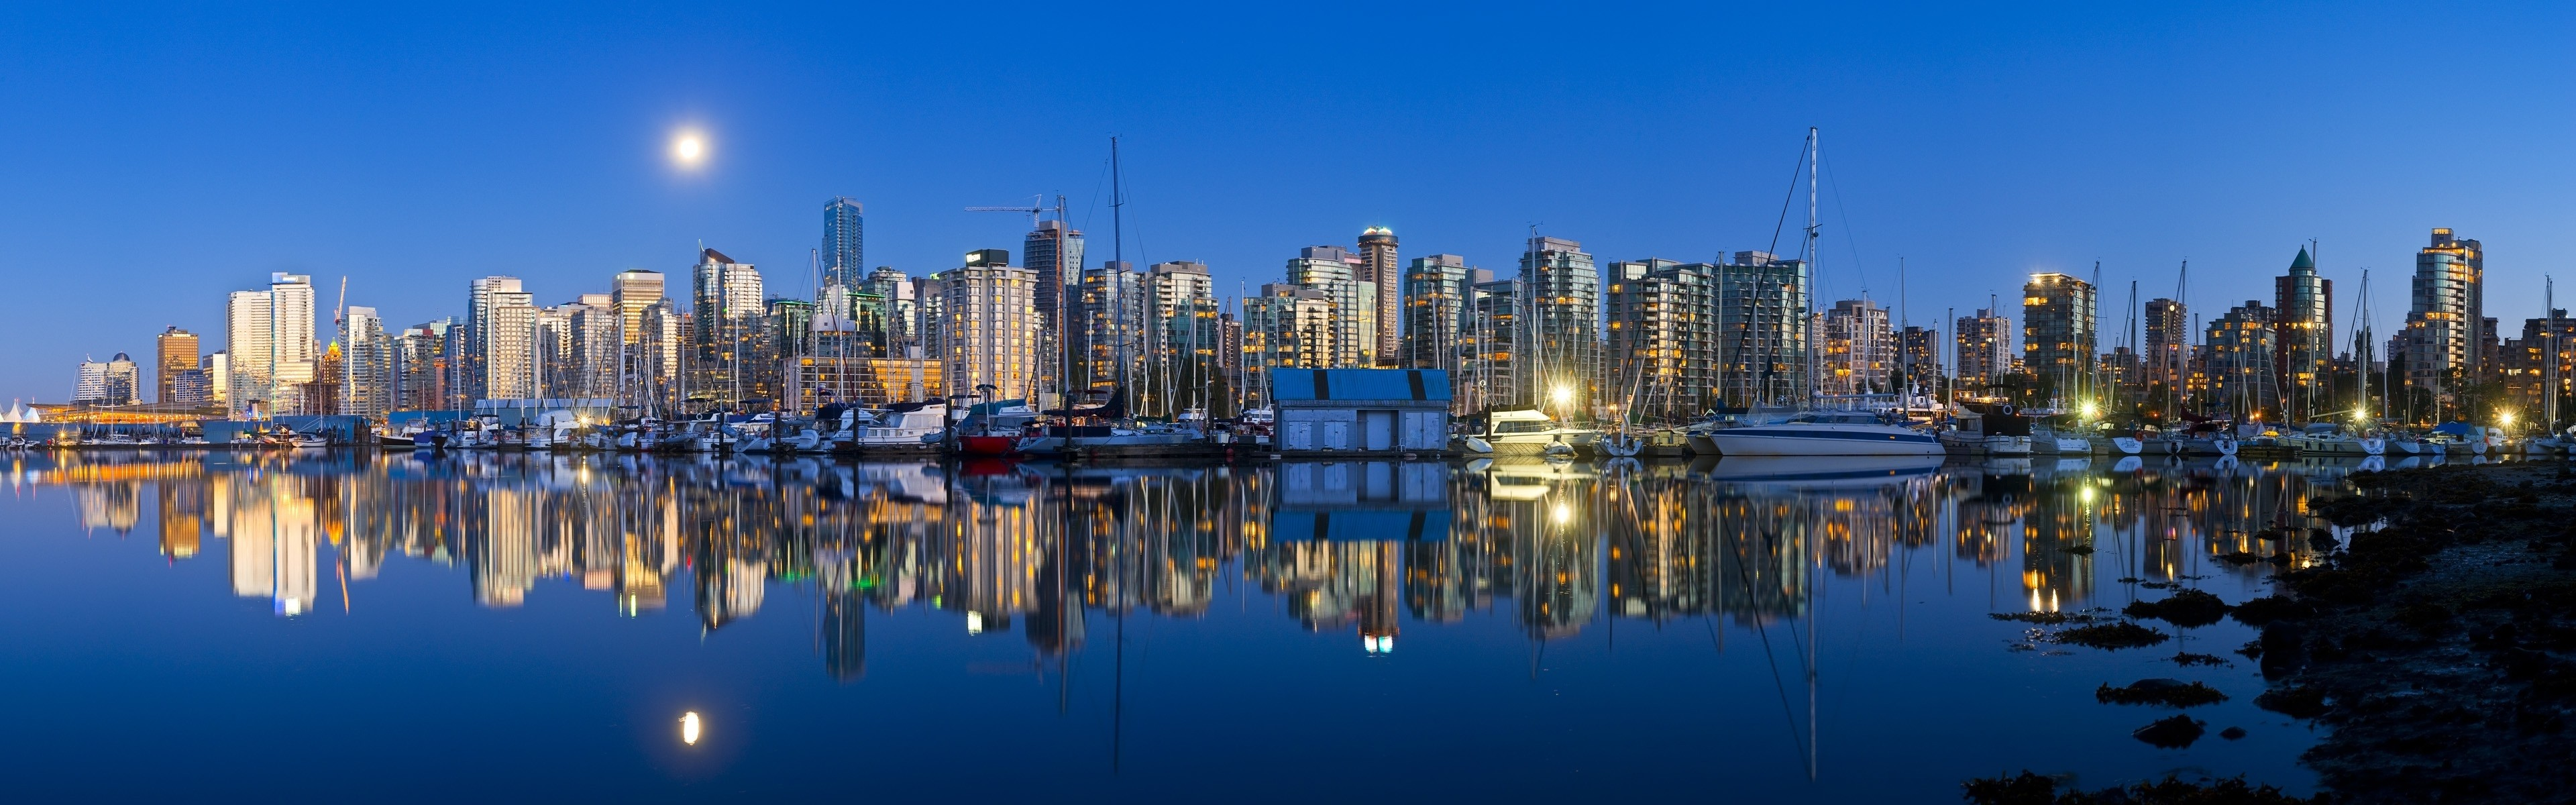 3840x1200 Vancouver HD Wallpaper | Hintergrund |  | ID:396622 - Wallpaper  Abyss